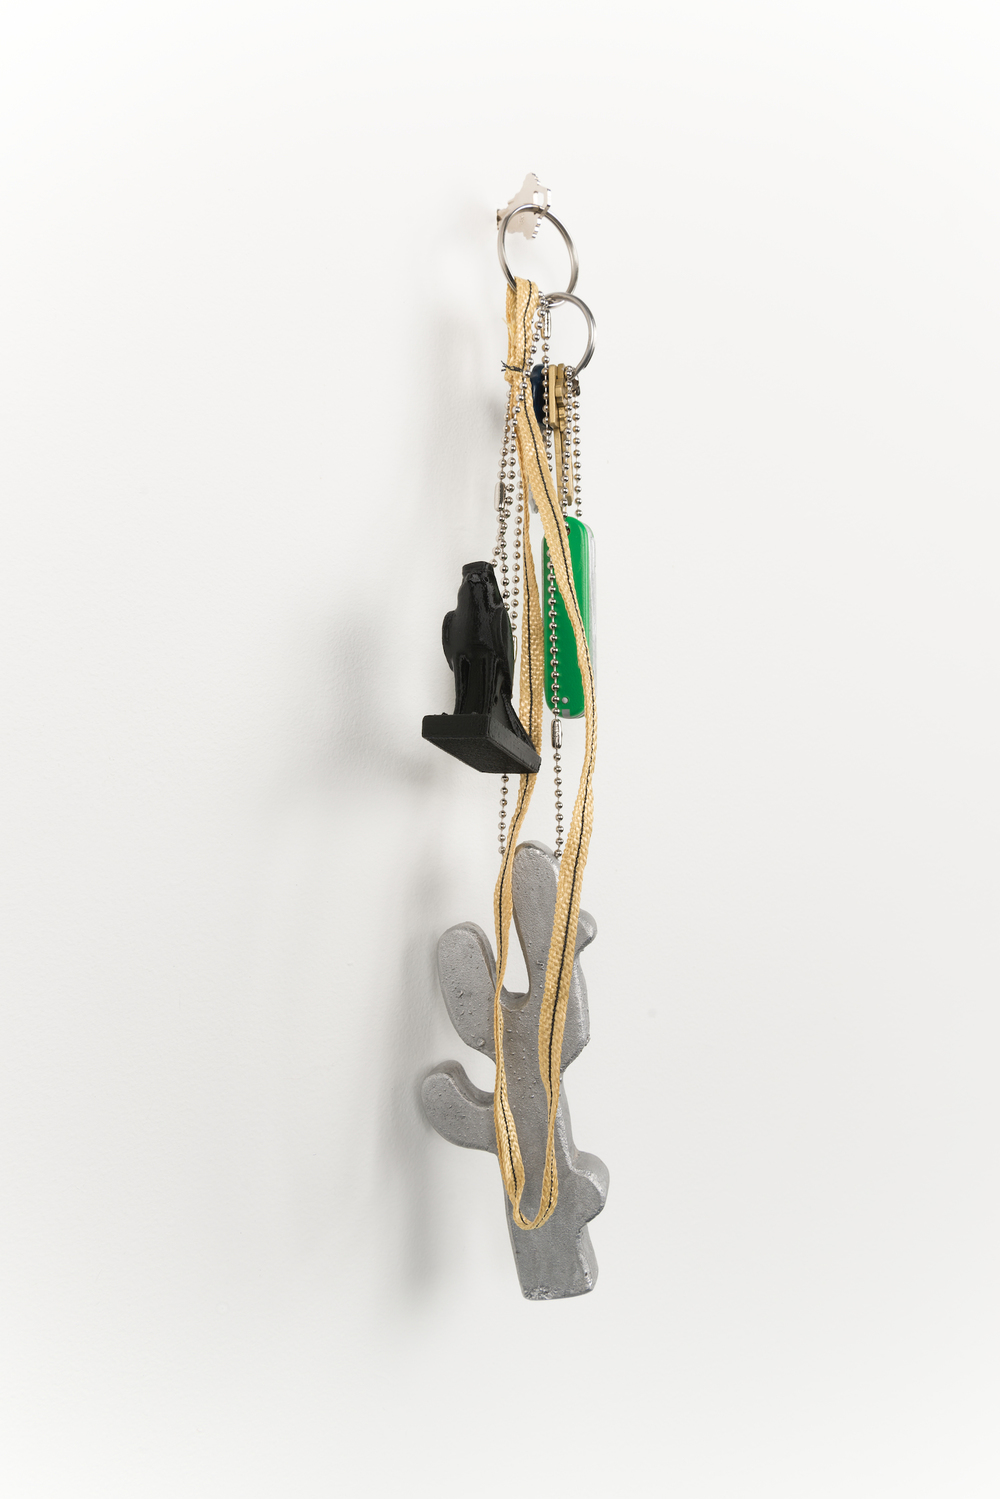 Chris Bradley  Token (Cactus)  2013 Cast aluminum, wood, PLA, Kevlar, key rings, chain 17h x 4w x 3d in CB054